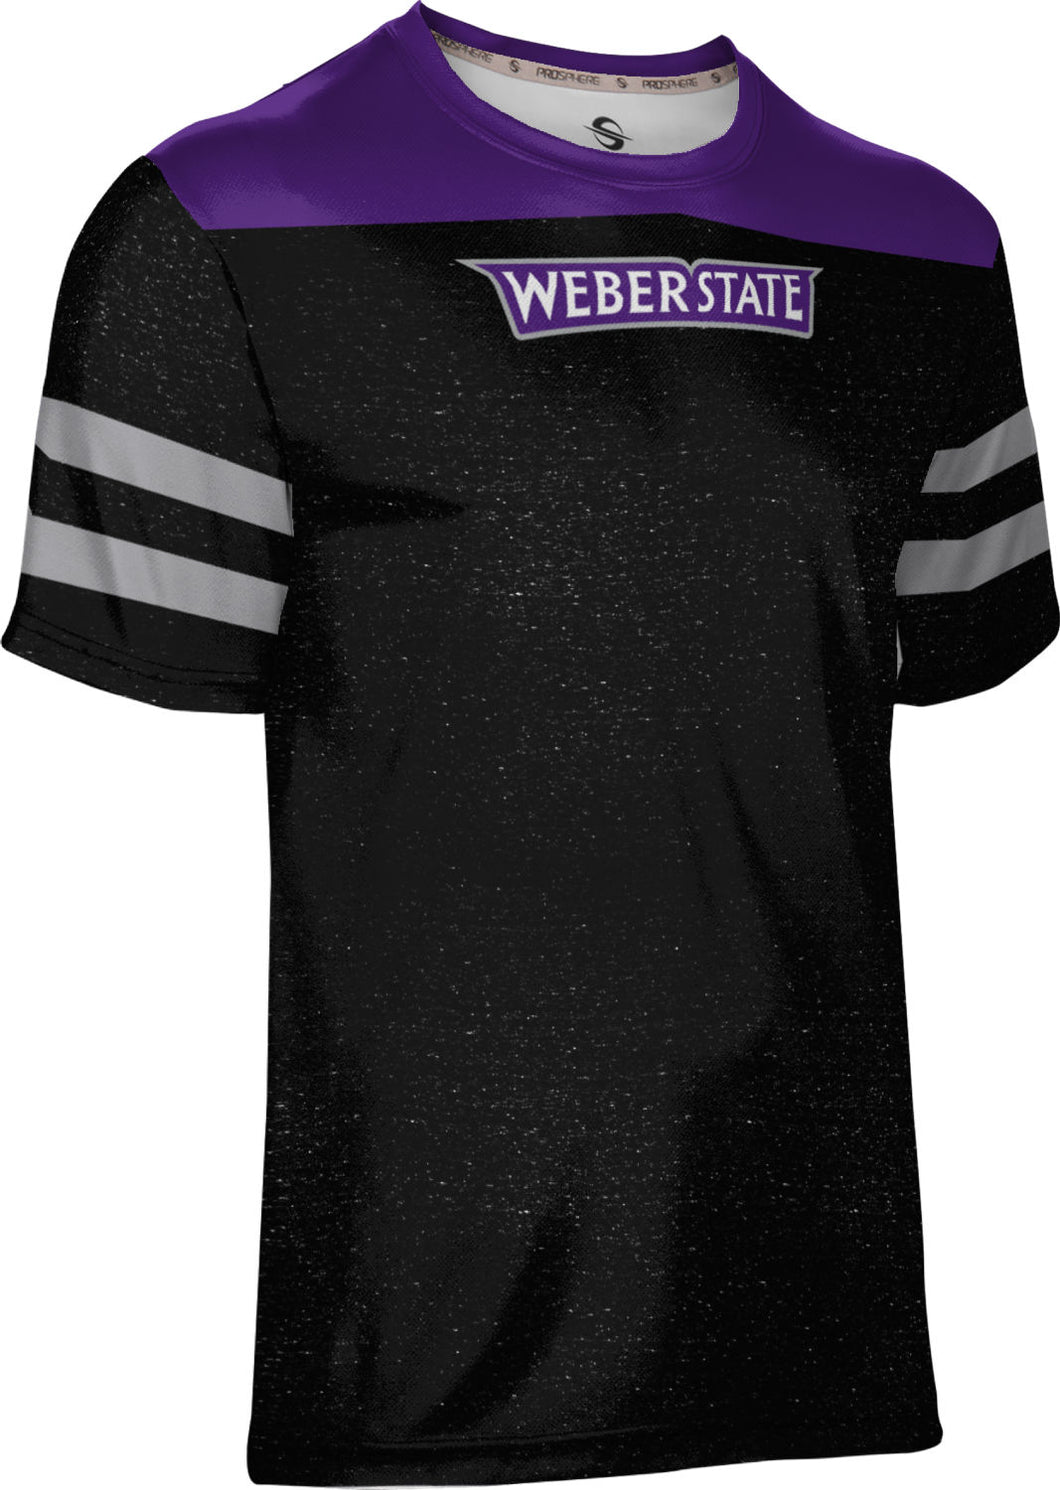 Weber State University: Boys' T-shirt - Game Time